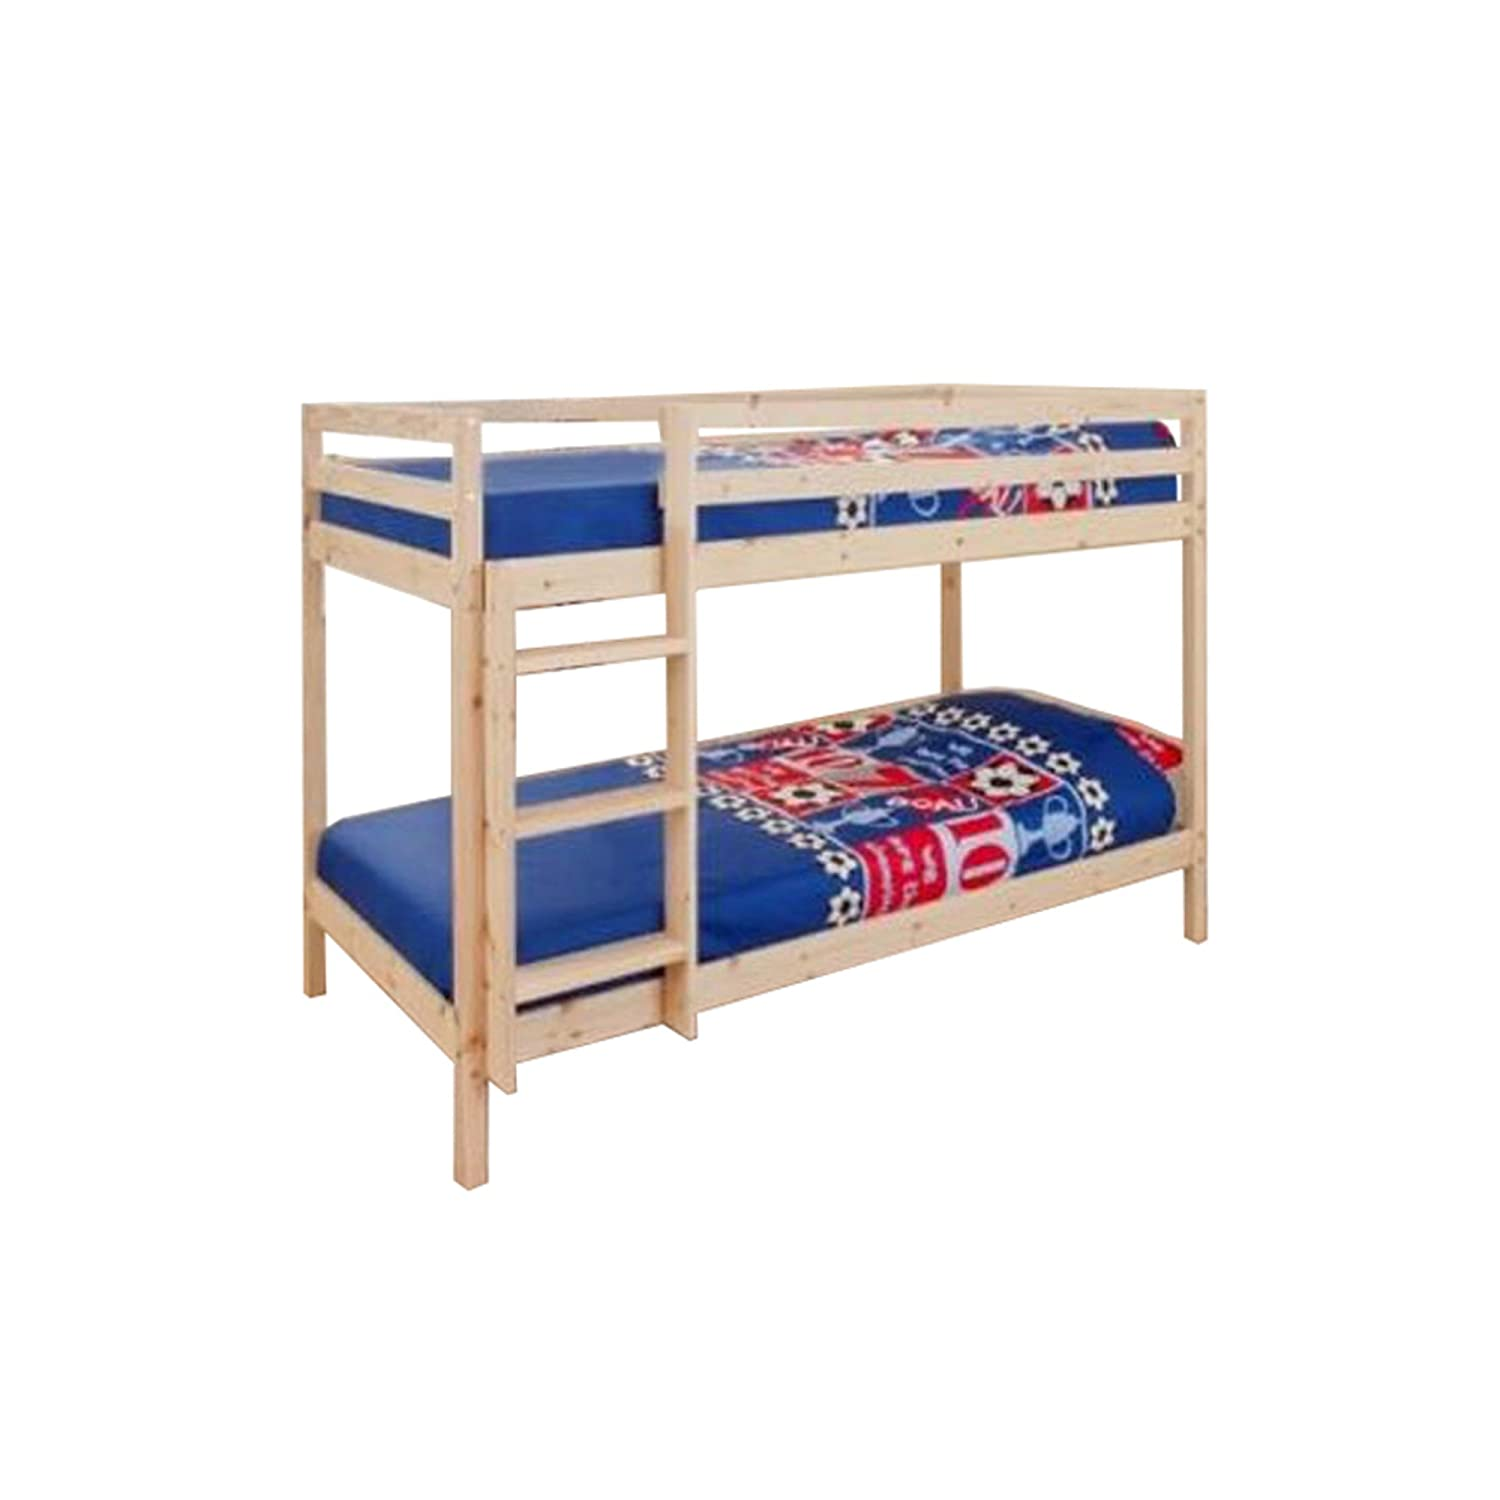 2ft6 Small Single Wooden Bunk Bed In Natural Pine Zara Amazoncouk Kitchen Home